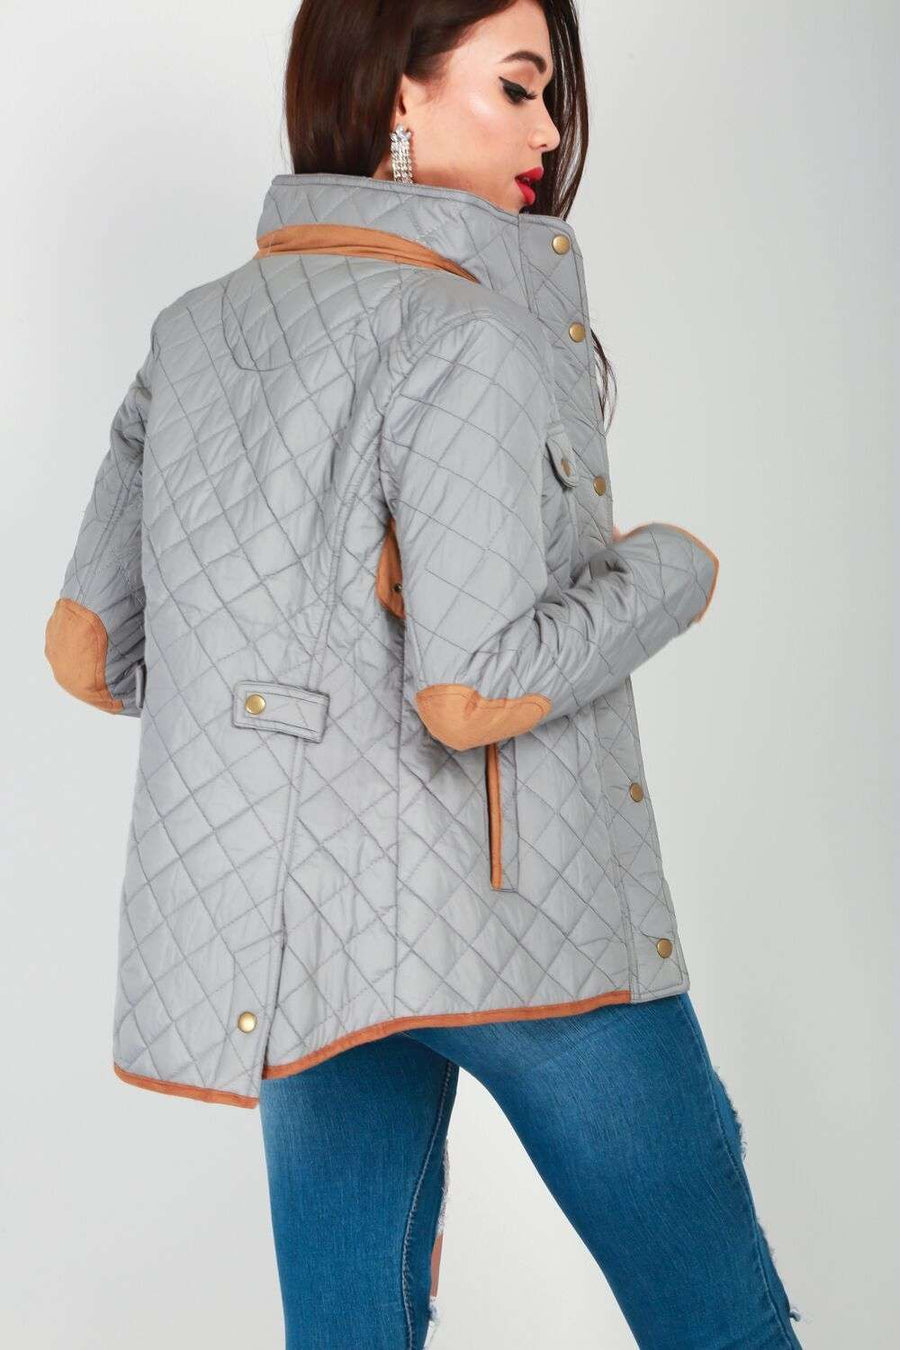 Ella Quilted Patched Jacket - bejealous-com